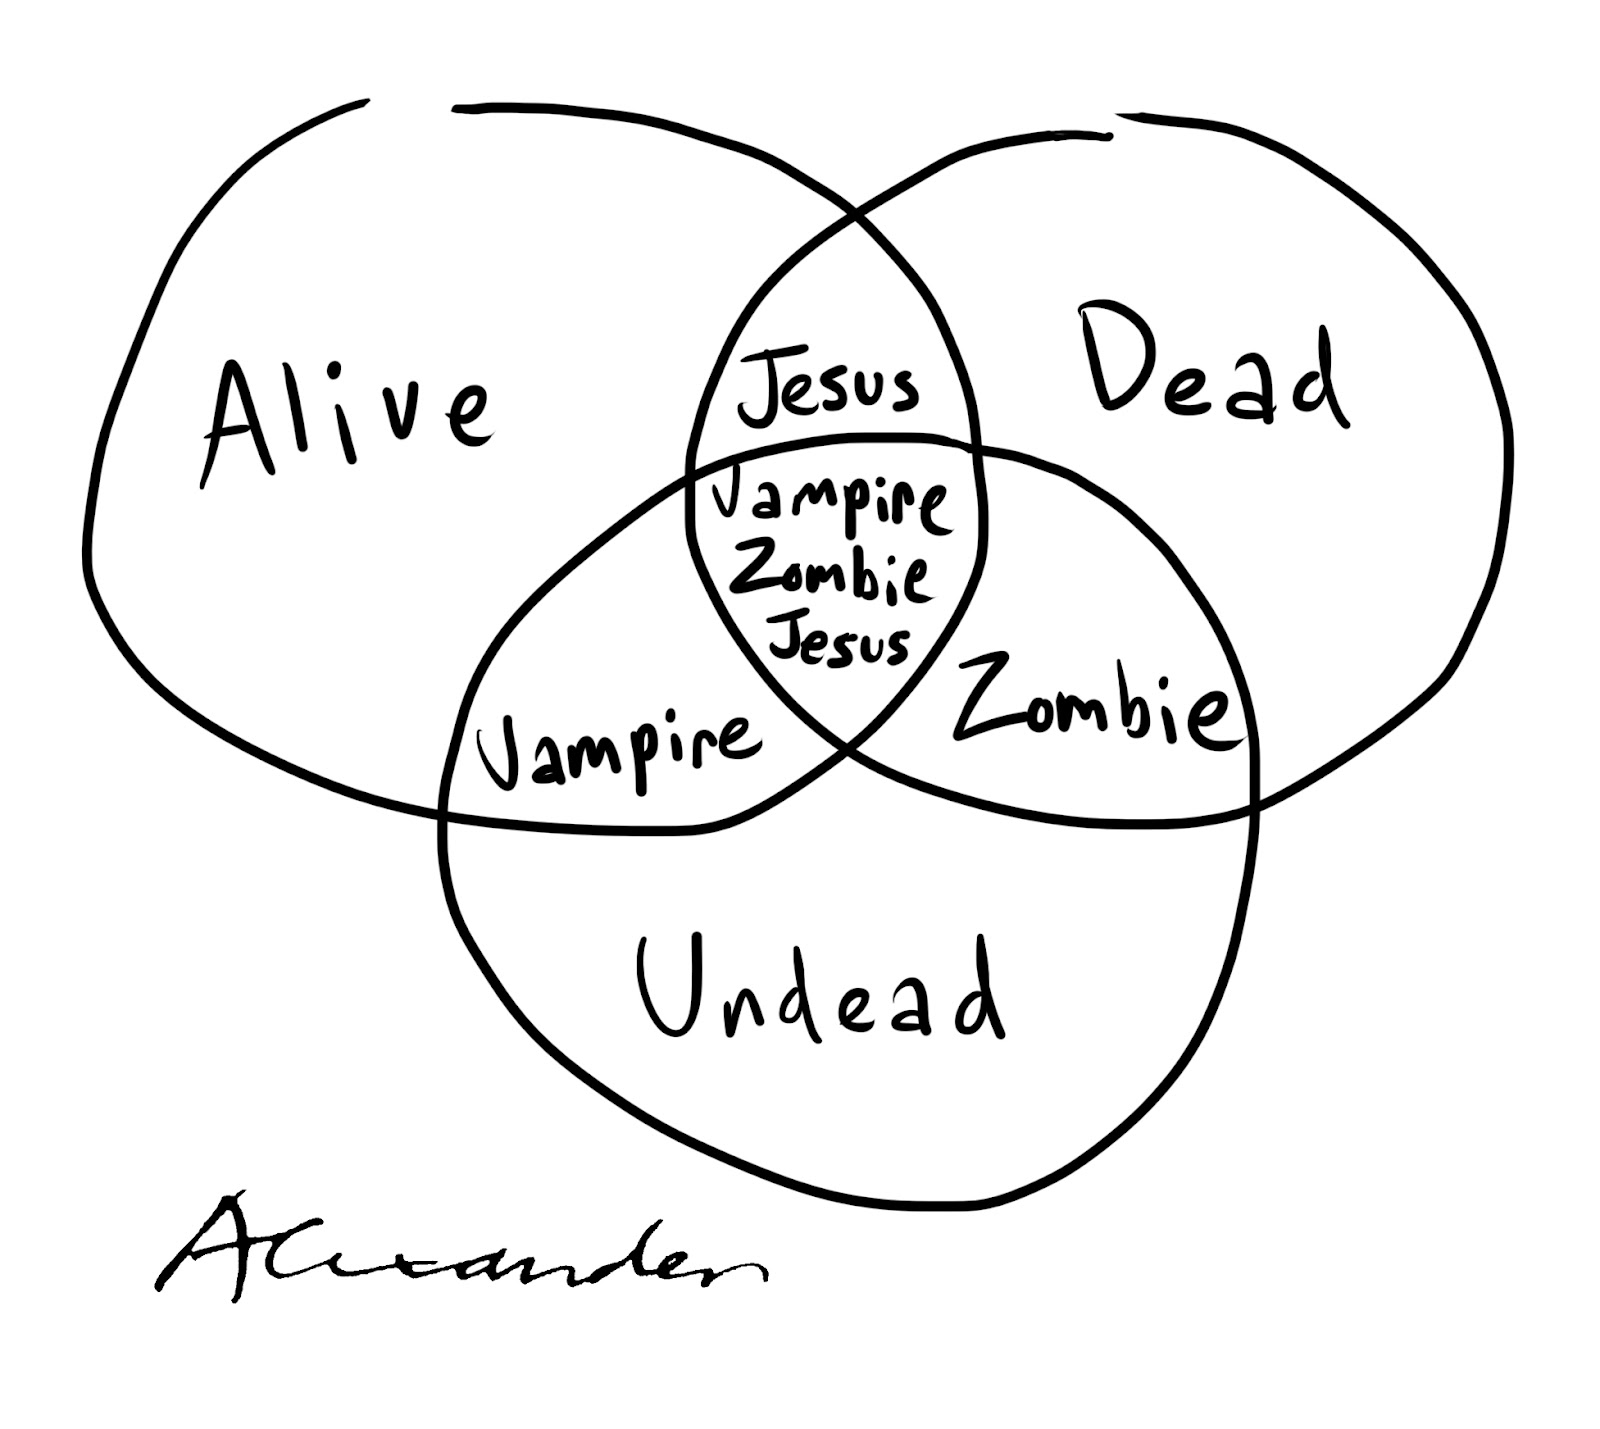 alexander s cartoon blog venn diagram Compare and Contrast Venn Diagram venn diagram